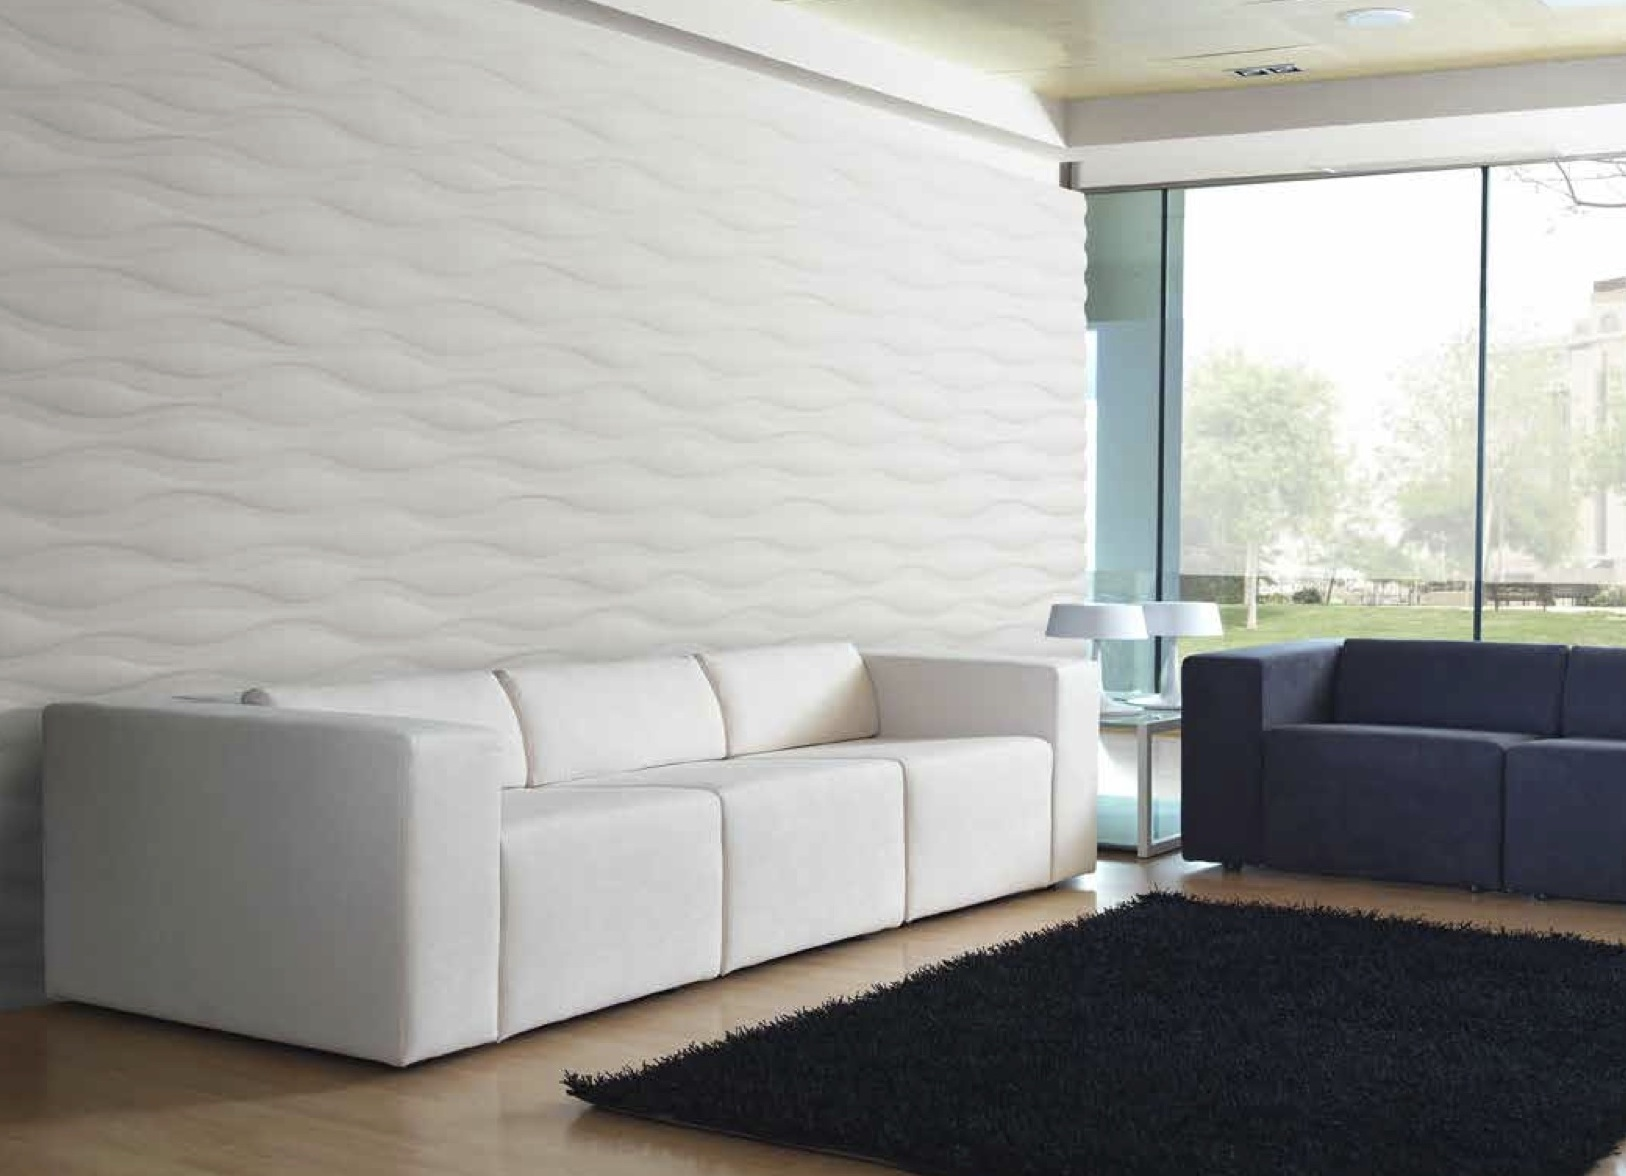 Design 12: Dreamwall Lifestyle \'Harmony\' Wall Panels – Dreamwall ...